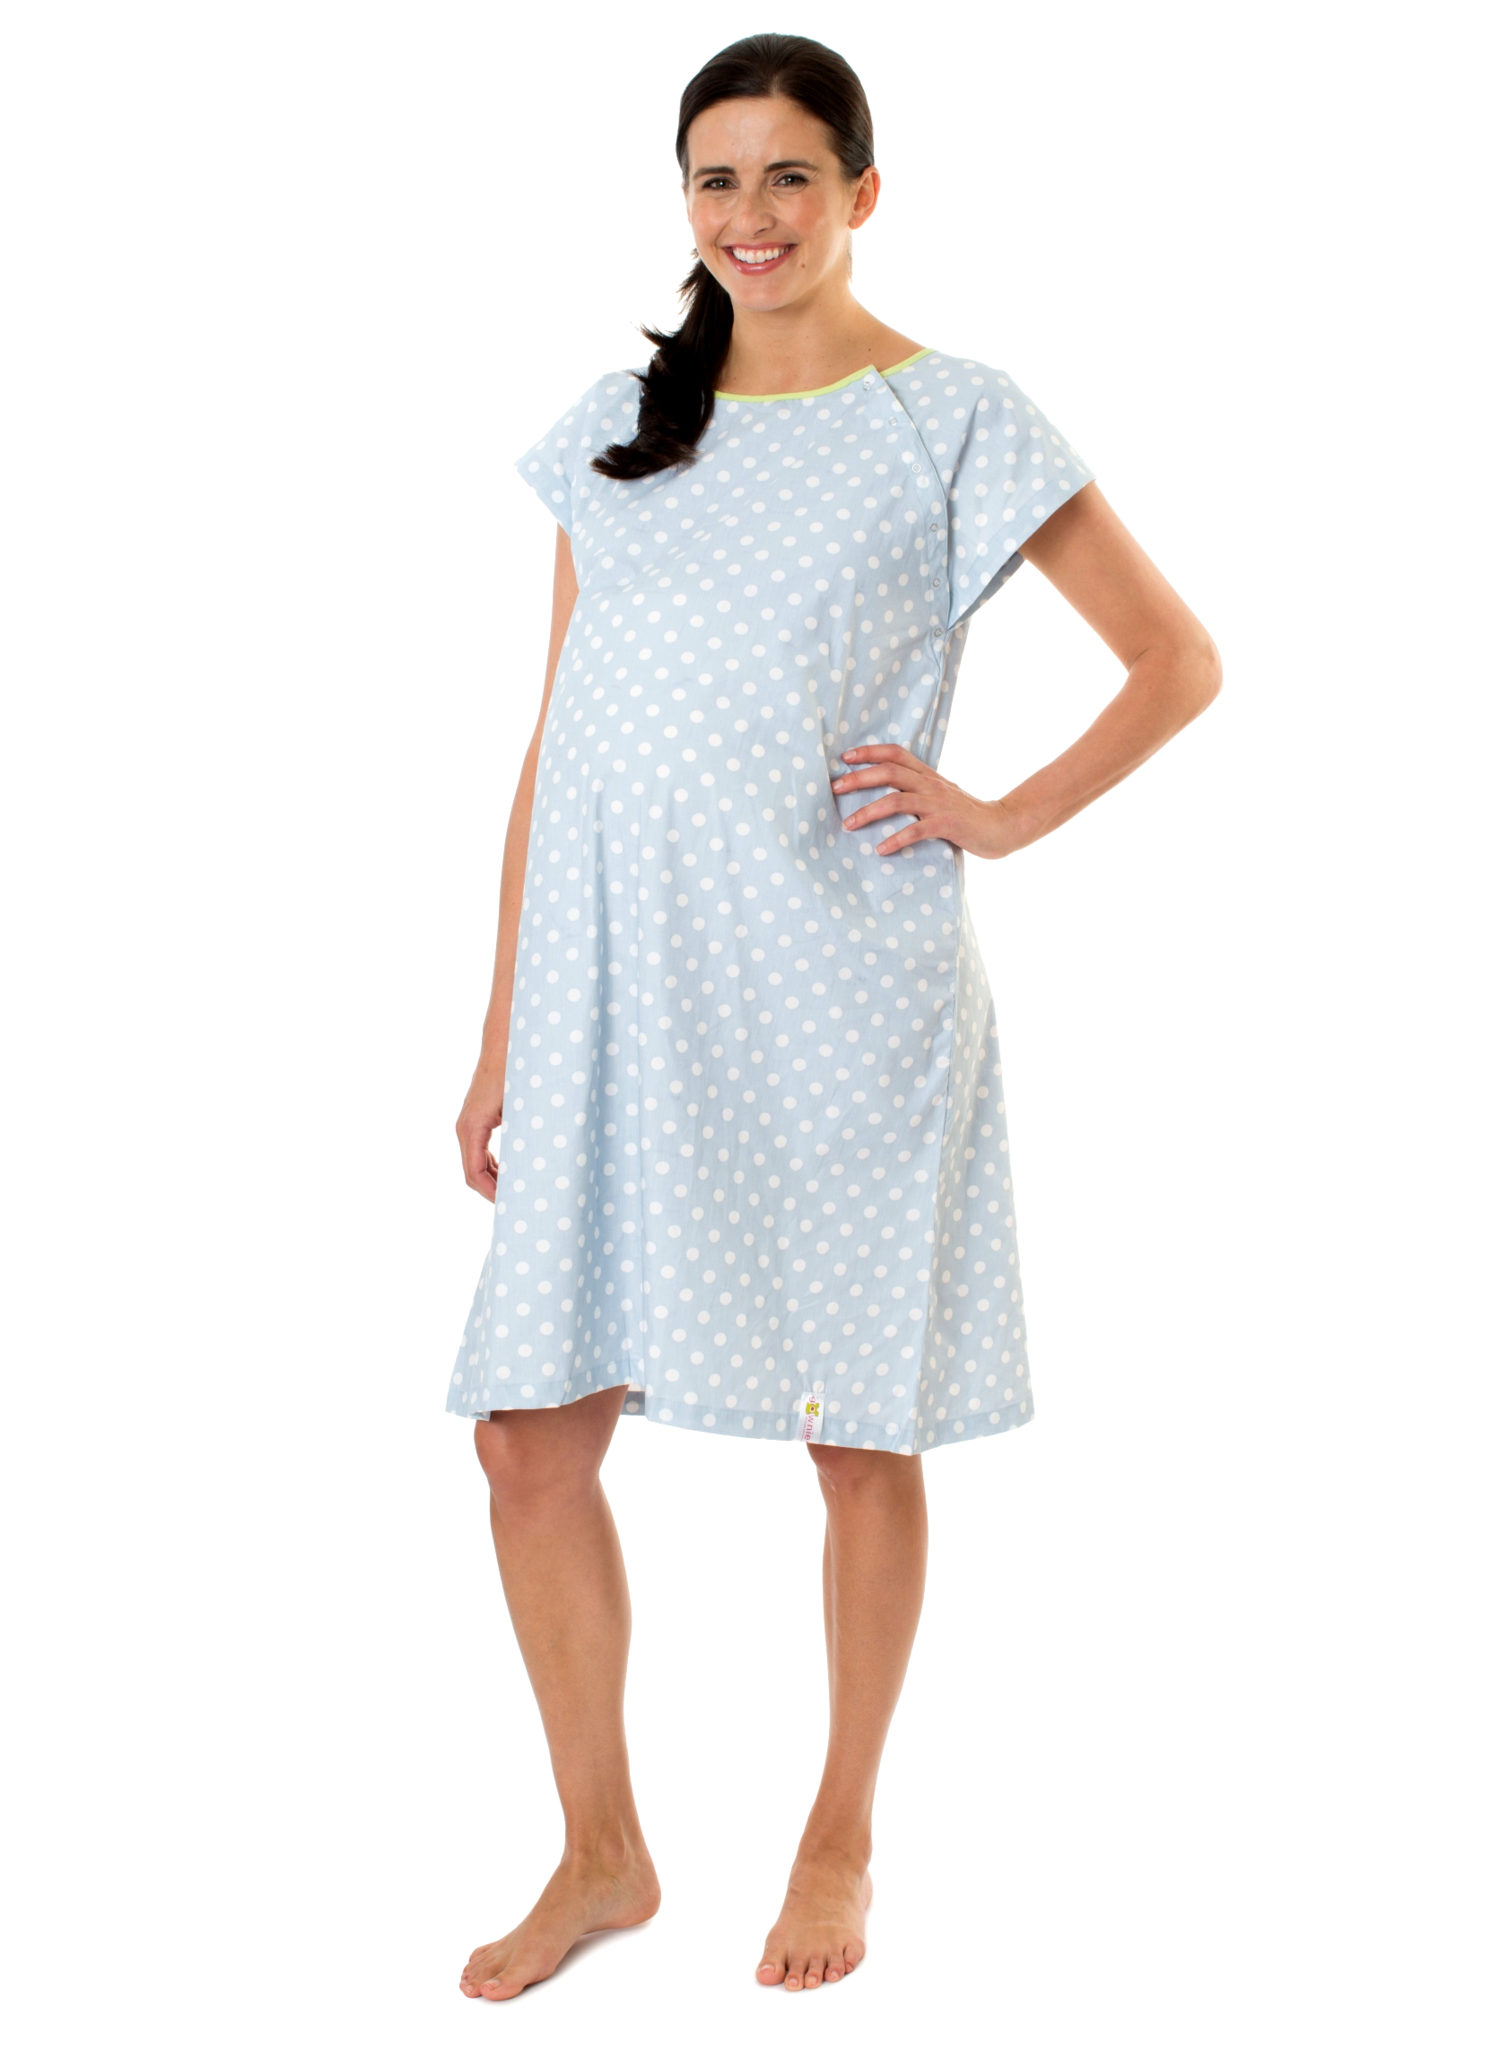 c19d4a91a12 Nicole Gownie- the original labor hospital gowns by Baby Be Mine Maternity.  Deliver in style and comfort. Soft baby blue with white dots. Comes in 3  sizes.